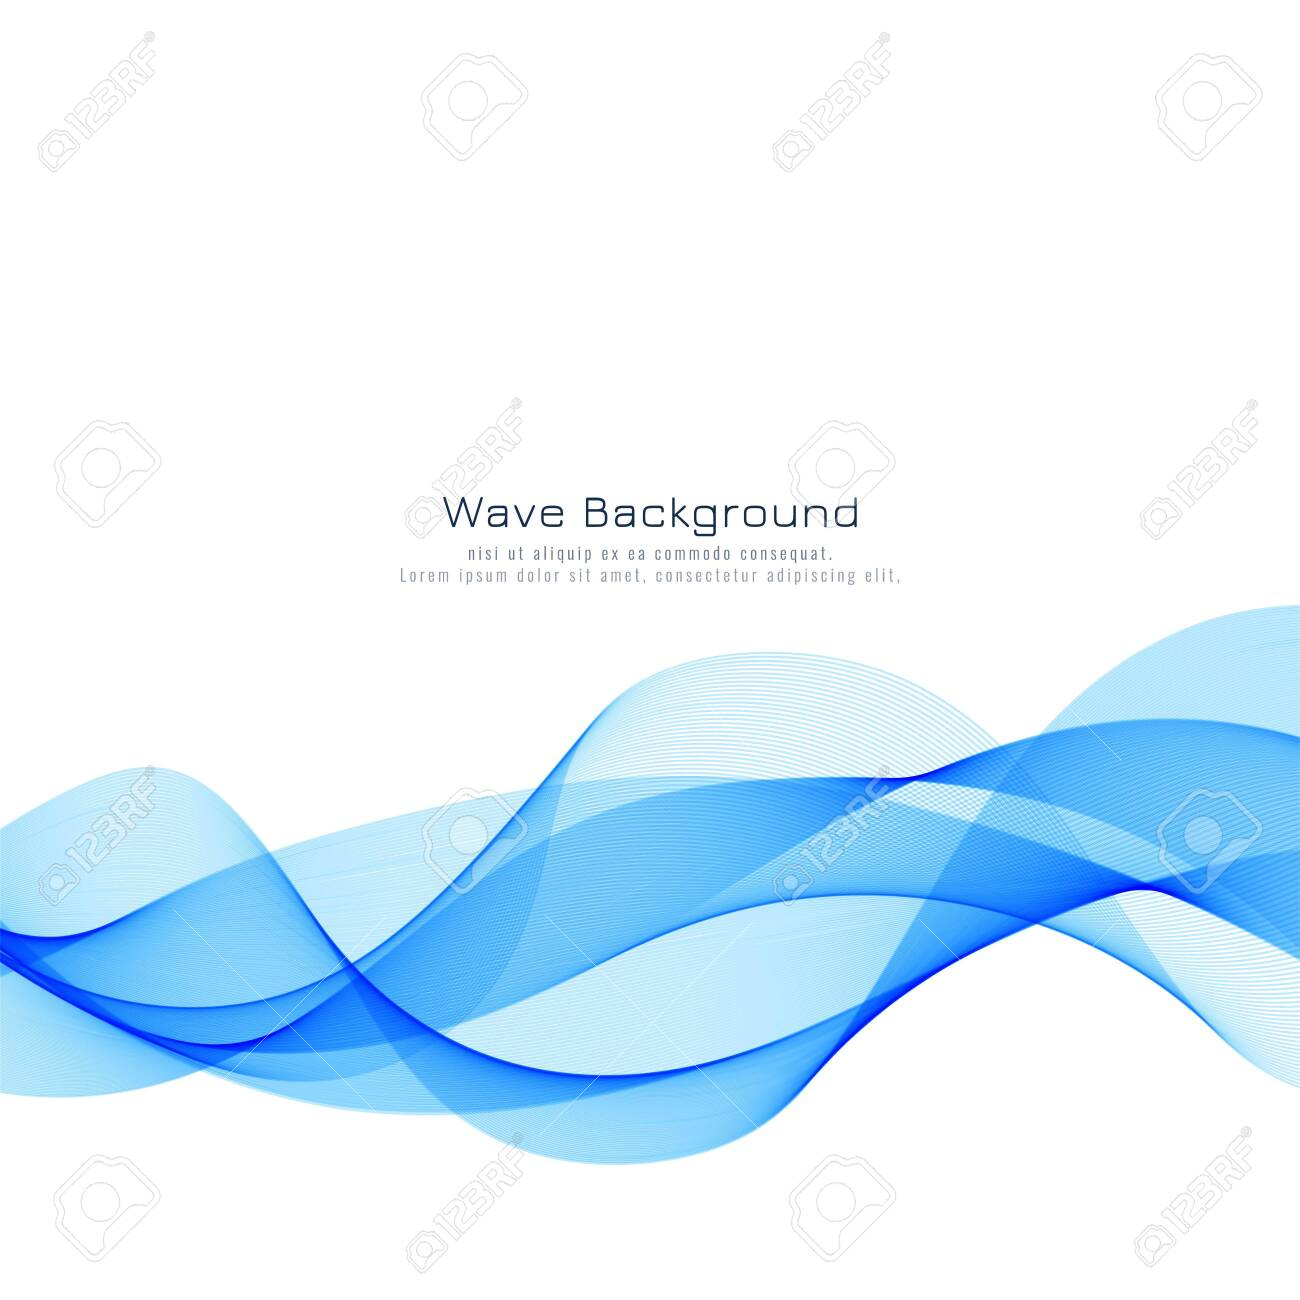 Abstract stylish blue wave background - 124326672